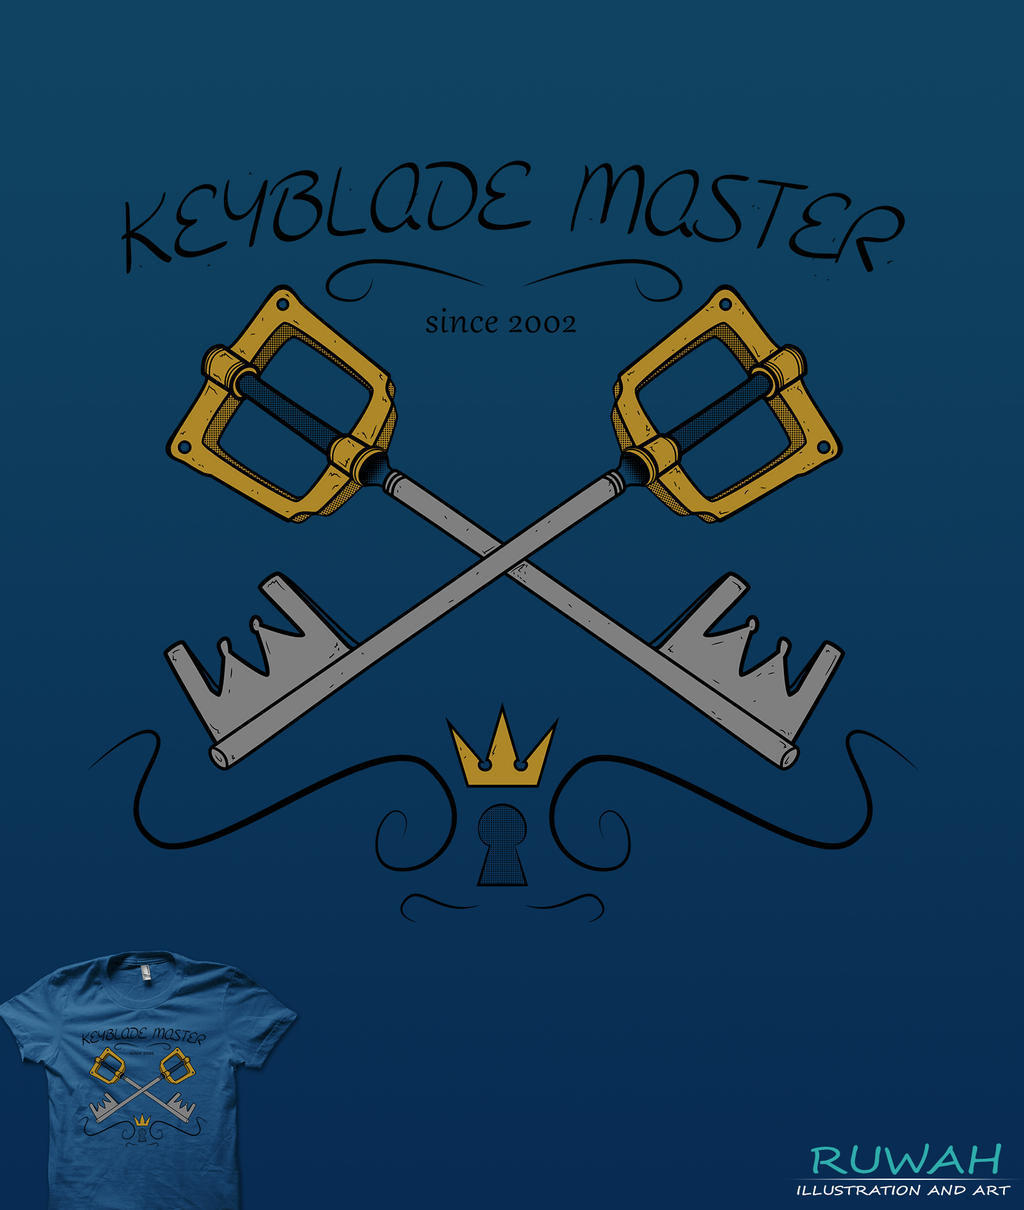 Kingdom Hearts Iphone Wallpaper: Keyblade Master, Since 2002 [Kingdom Hearts] By Ruwah On